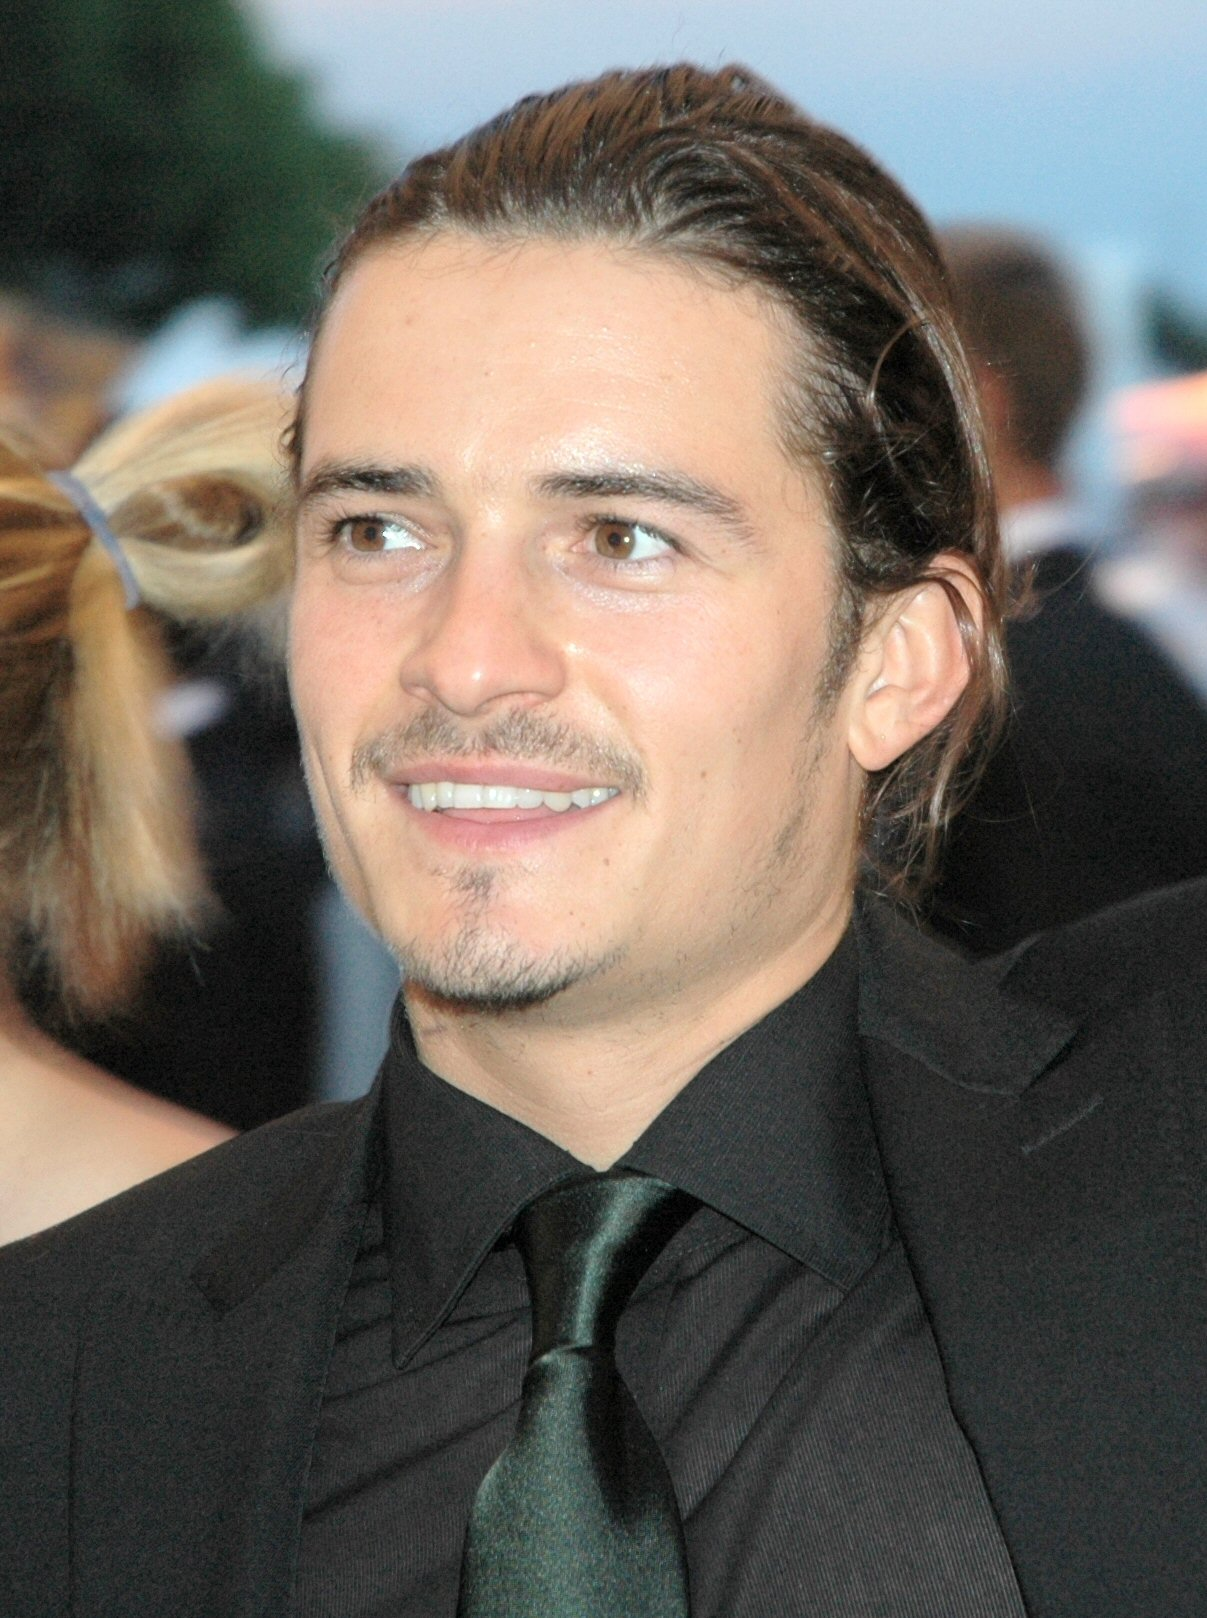 Orlando Bloom at Venice Festival